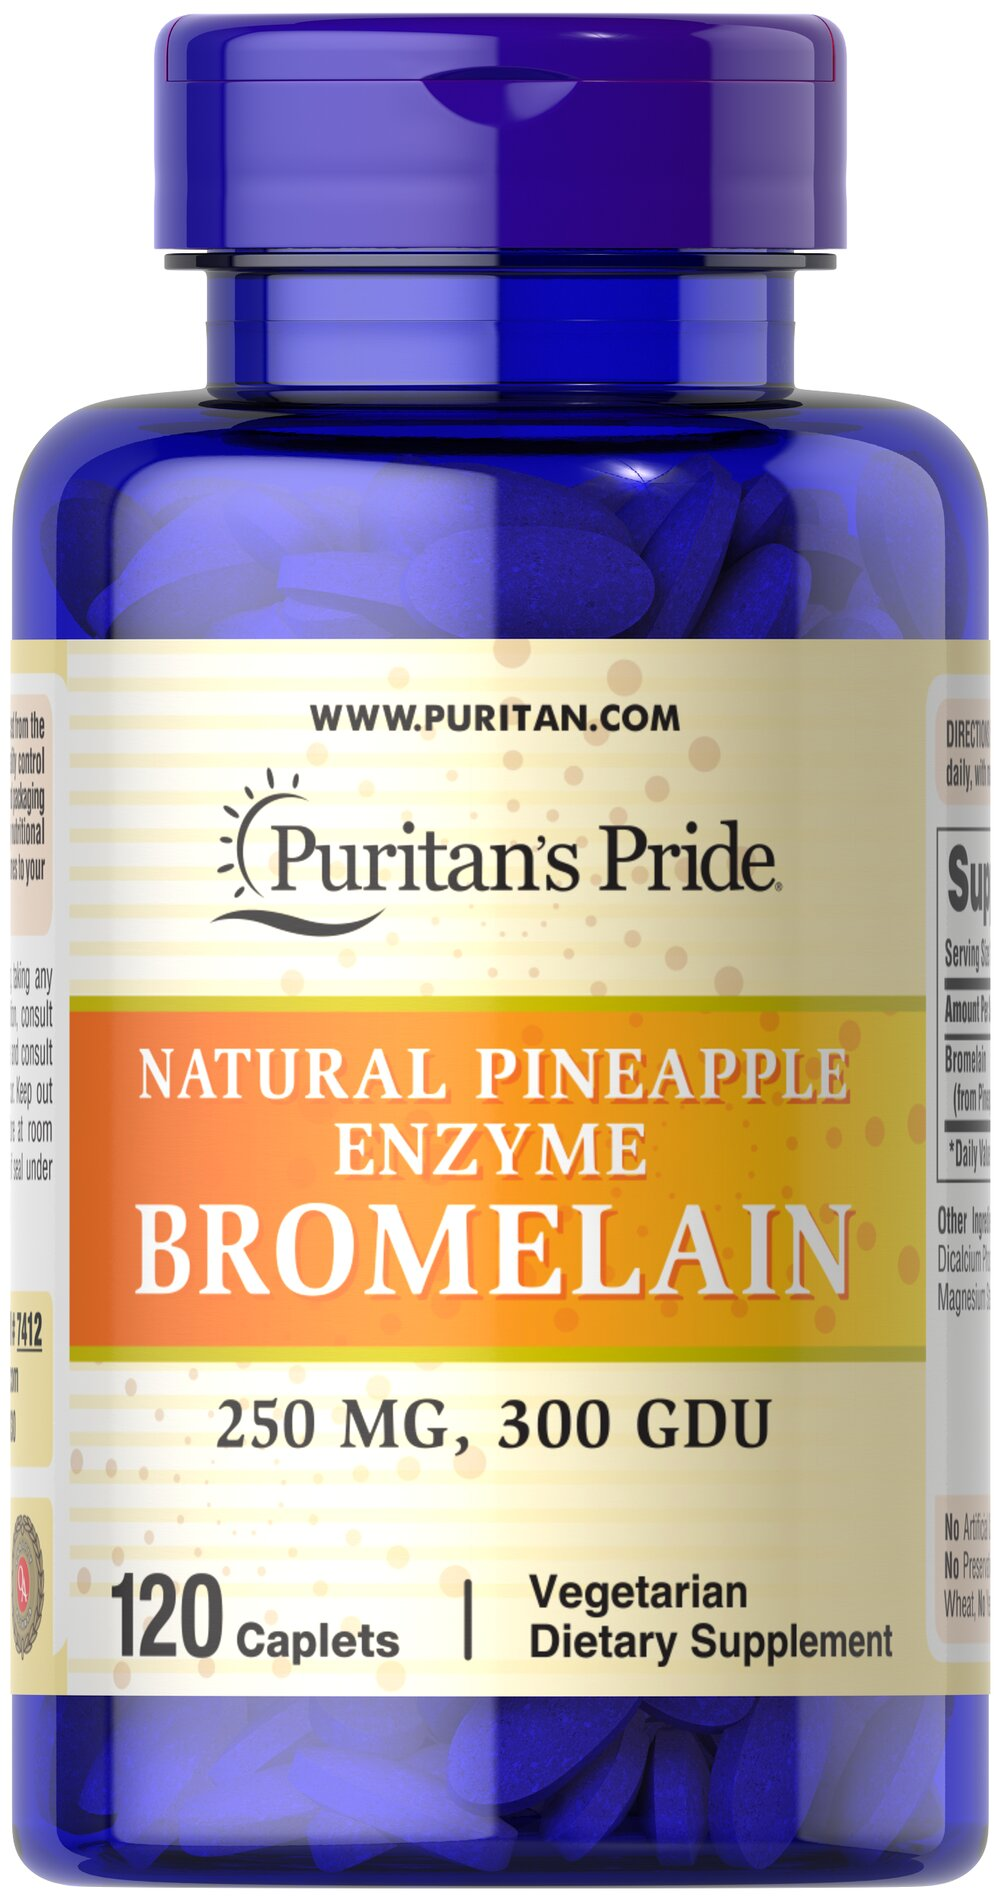 Bromelain 500 mg 300 GDU/gram <p>Derived from the stems of pineapple, Bromelain is a natural digestive enzyme.** </p><p>As a natural enzyme, Bromelain helps digest protein in the gastrointestinal tract.** </p><p>In general, enzymes break down the nutritional components of proteins, fats and carbohydrates, making these nutrients available for the body's energy needs, cell growth and other vital functions.**</p> 120 Caplets 500 mg $22.99